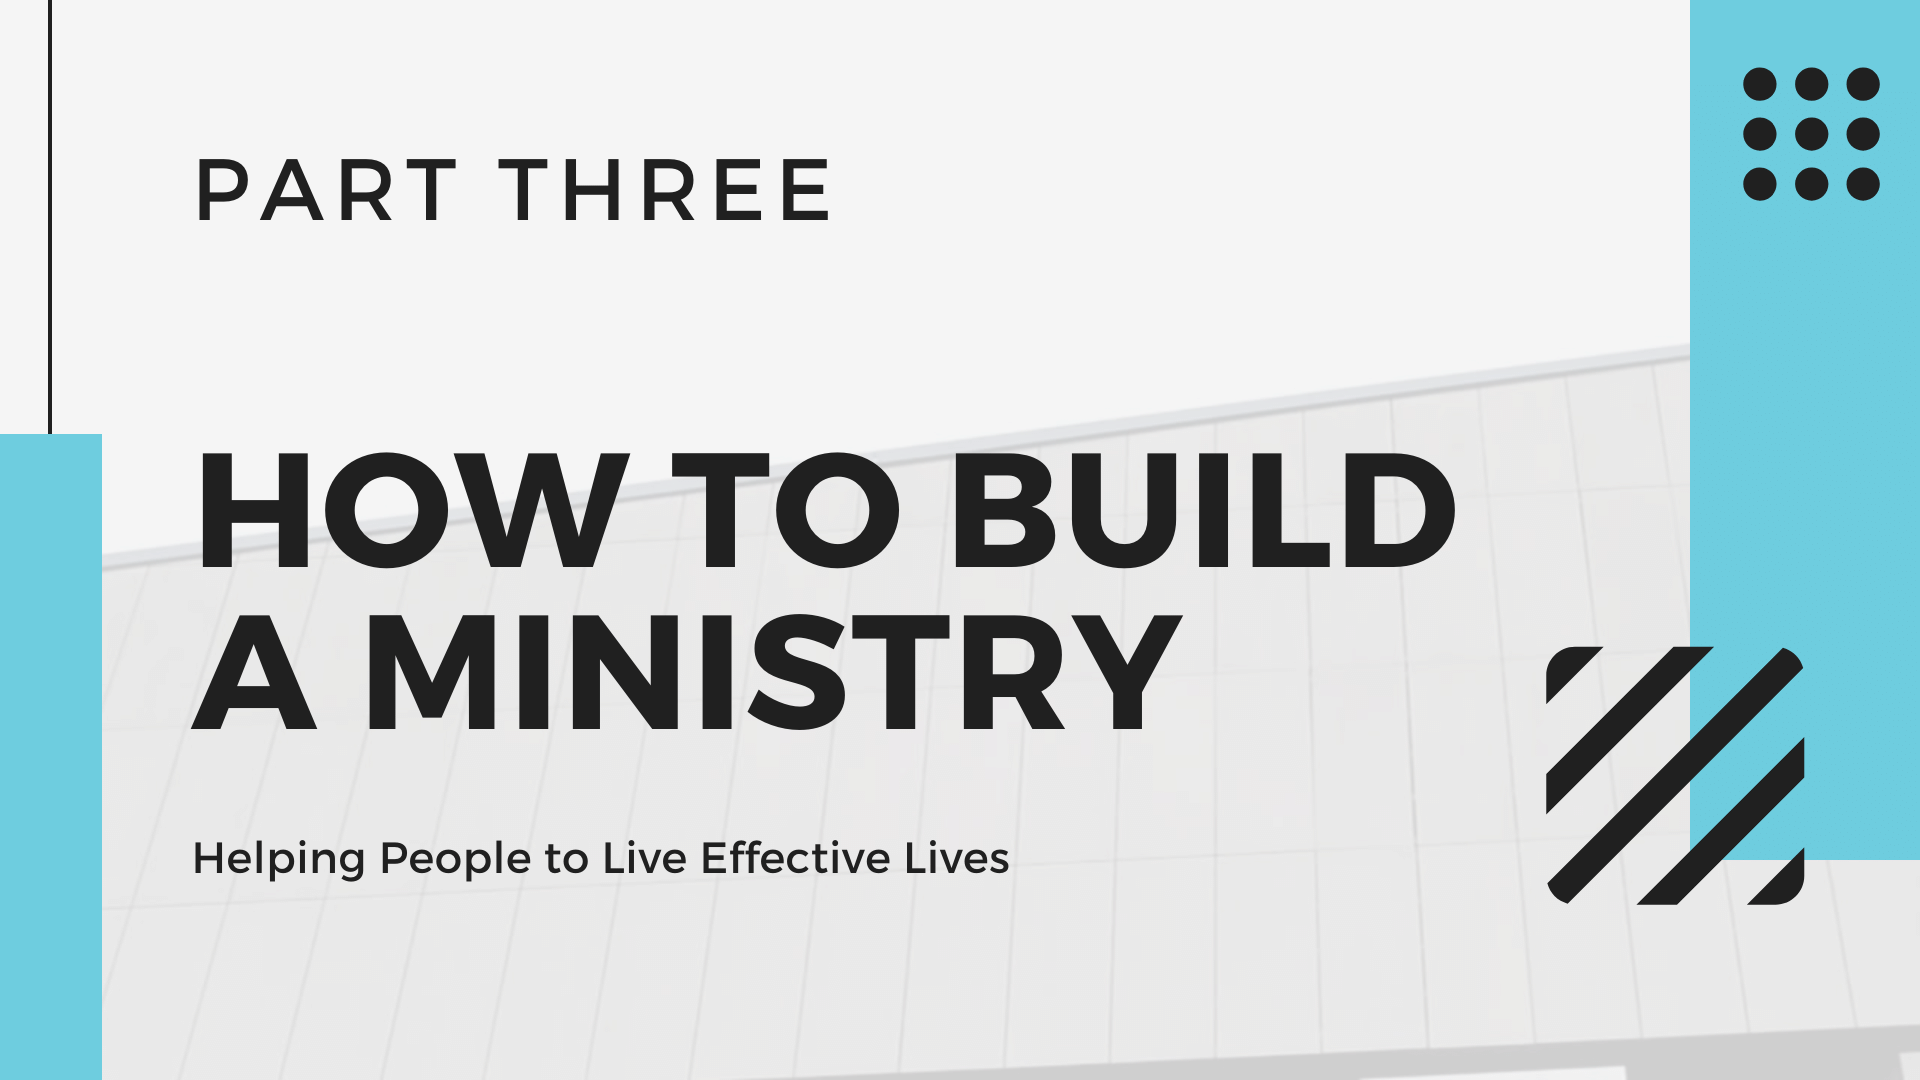 Video Channel How to Build a Ministry Part Three